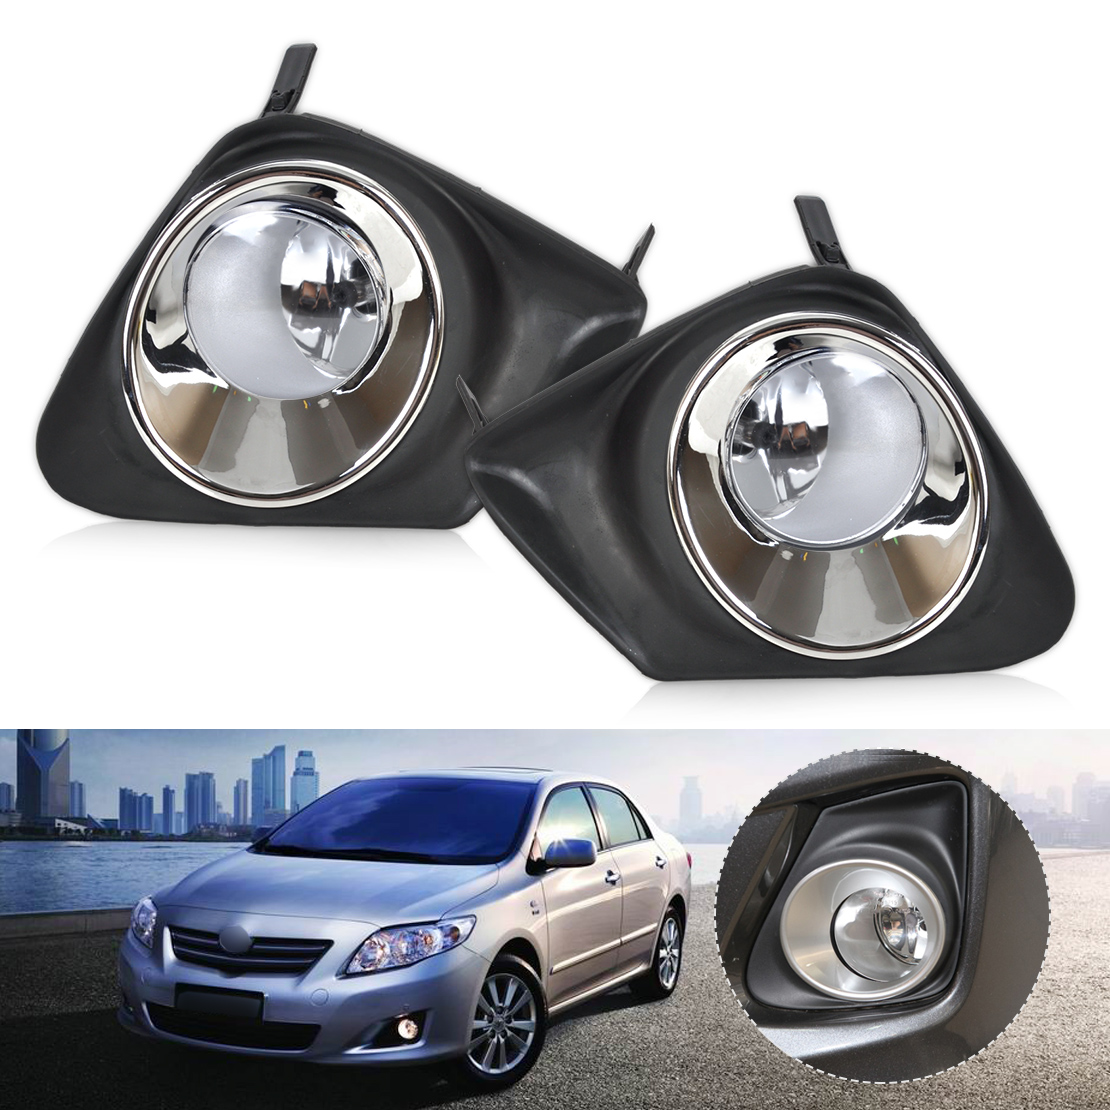 DWCX 4Pcs Car Front Bumper Fog Light Lamp + Grille Cover 812200D040 SC2592100 116-50131L Fit for Toyota Corolla 2011 2012 2013 1set front chrome housing clear lens driving bumper fog light lamp grille cover switch line kit for 2007 2009 toyota camry